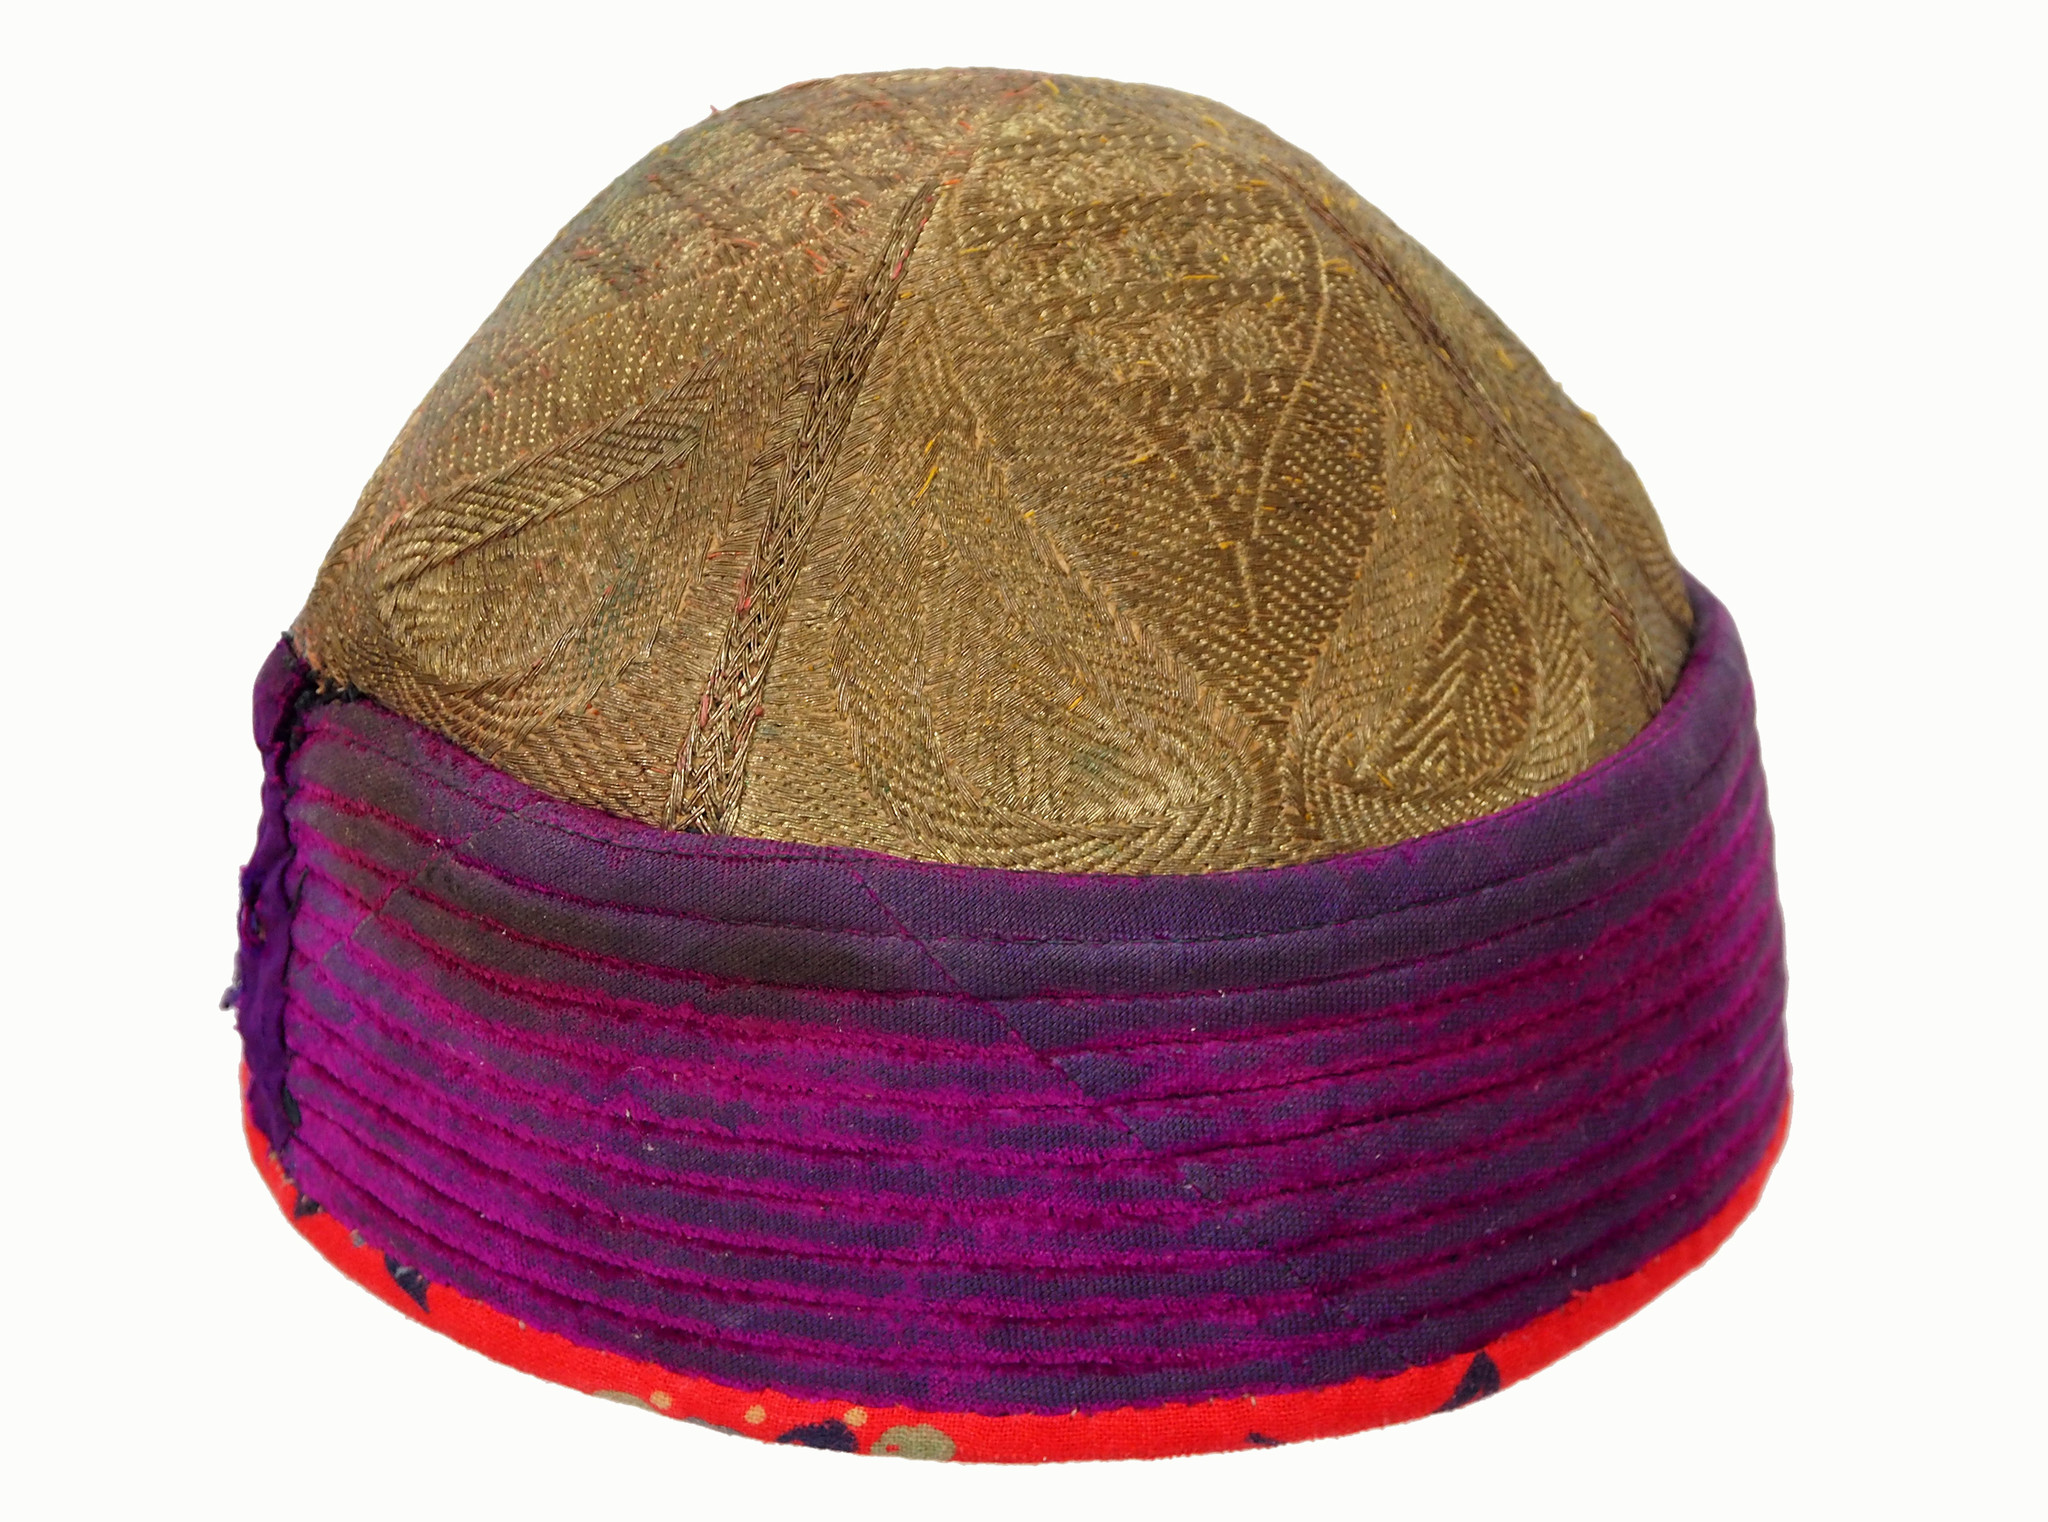 antique original AFGHANISTAN – Khyber Pass tribal metallic embroidery velvet hat  Afghan nomadic Traditional embroidered Wedding hat  zari